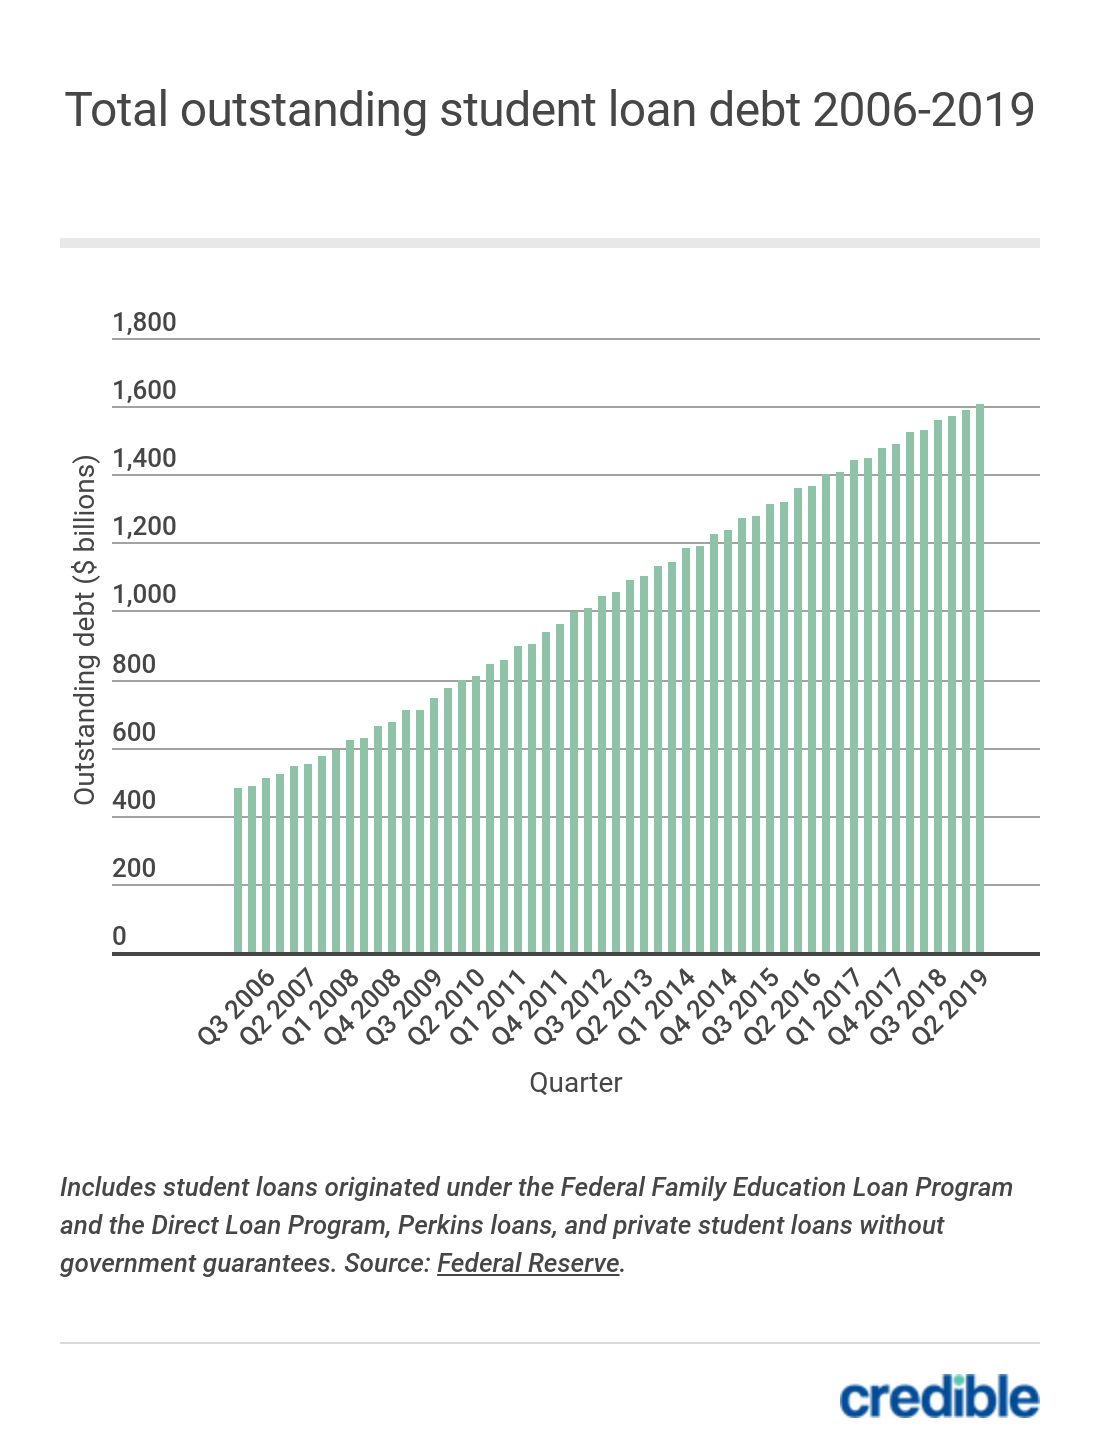 Total outstanding student loan debt 2006-2019